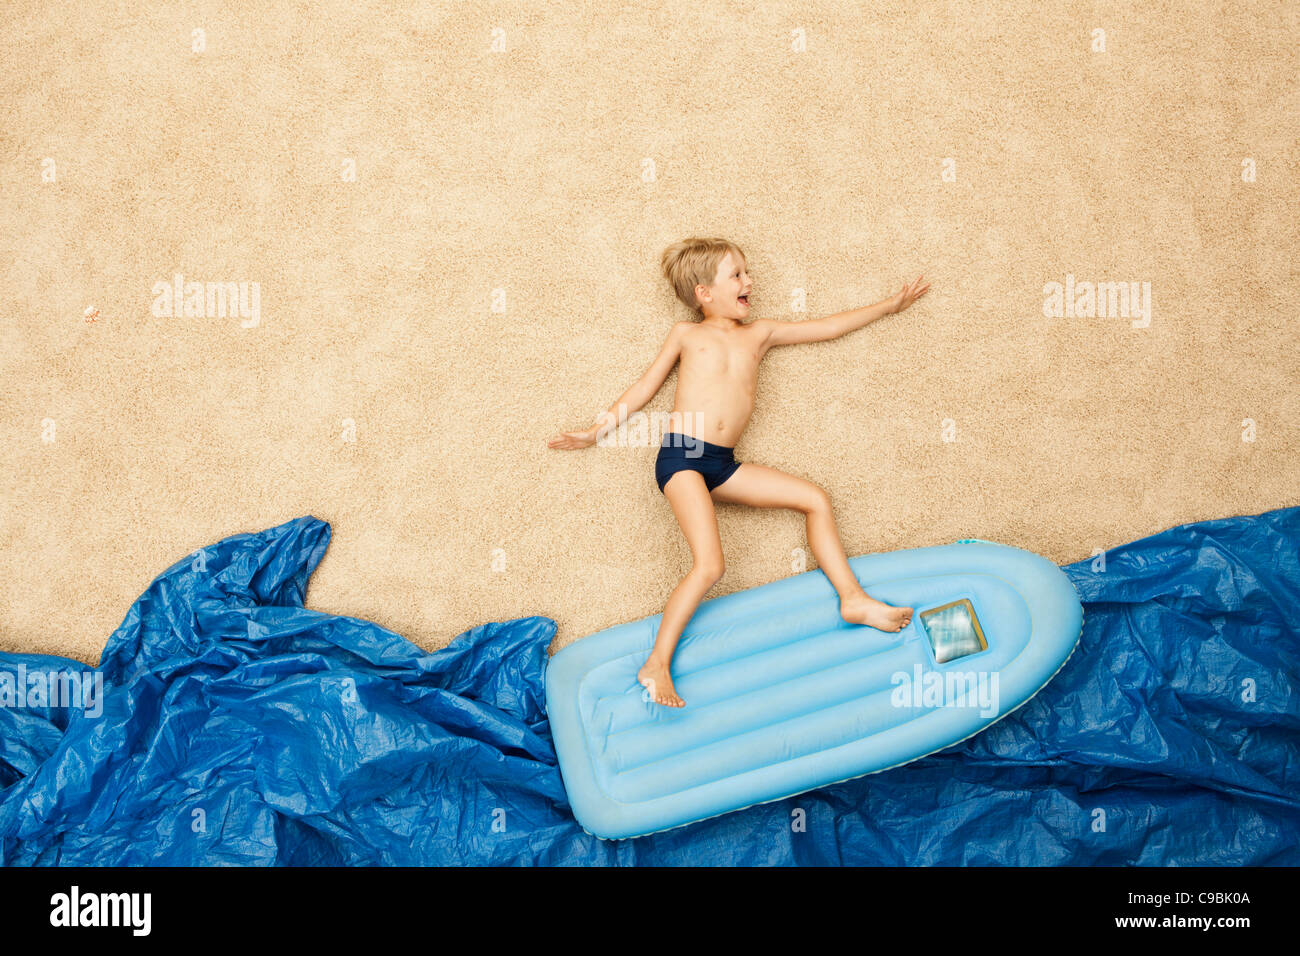 Germany, Boy on inflatable raft in water at beach - Stock Image